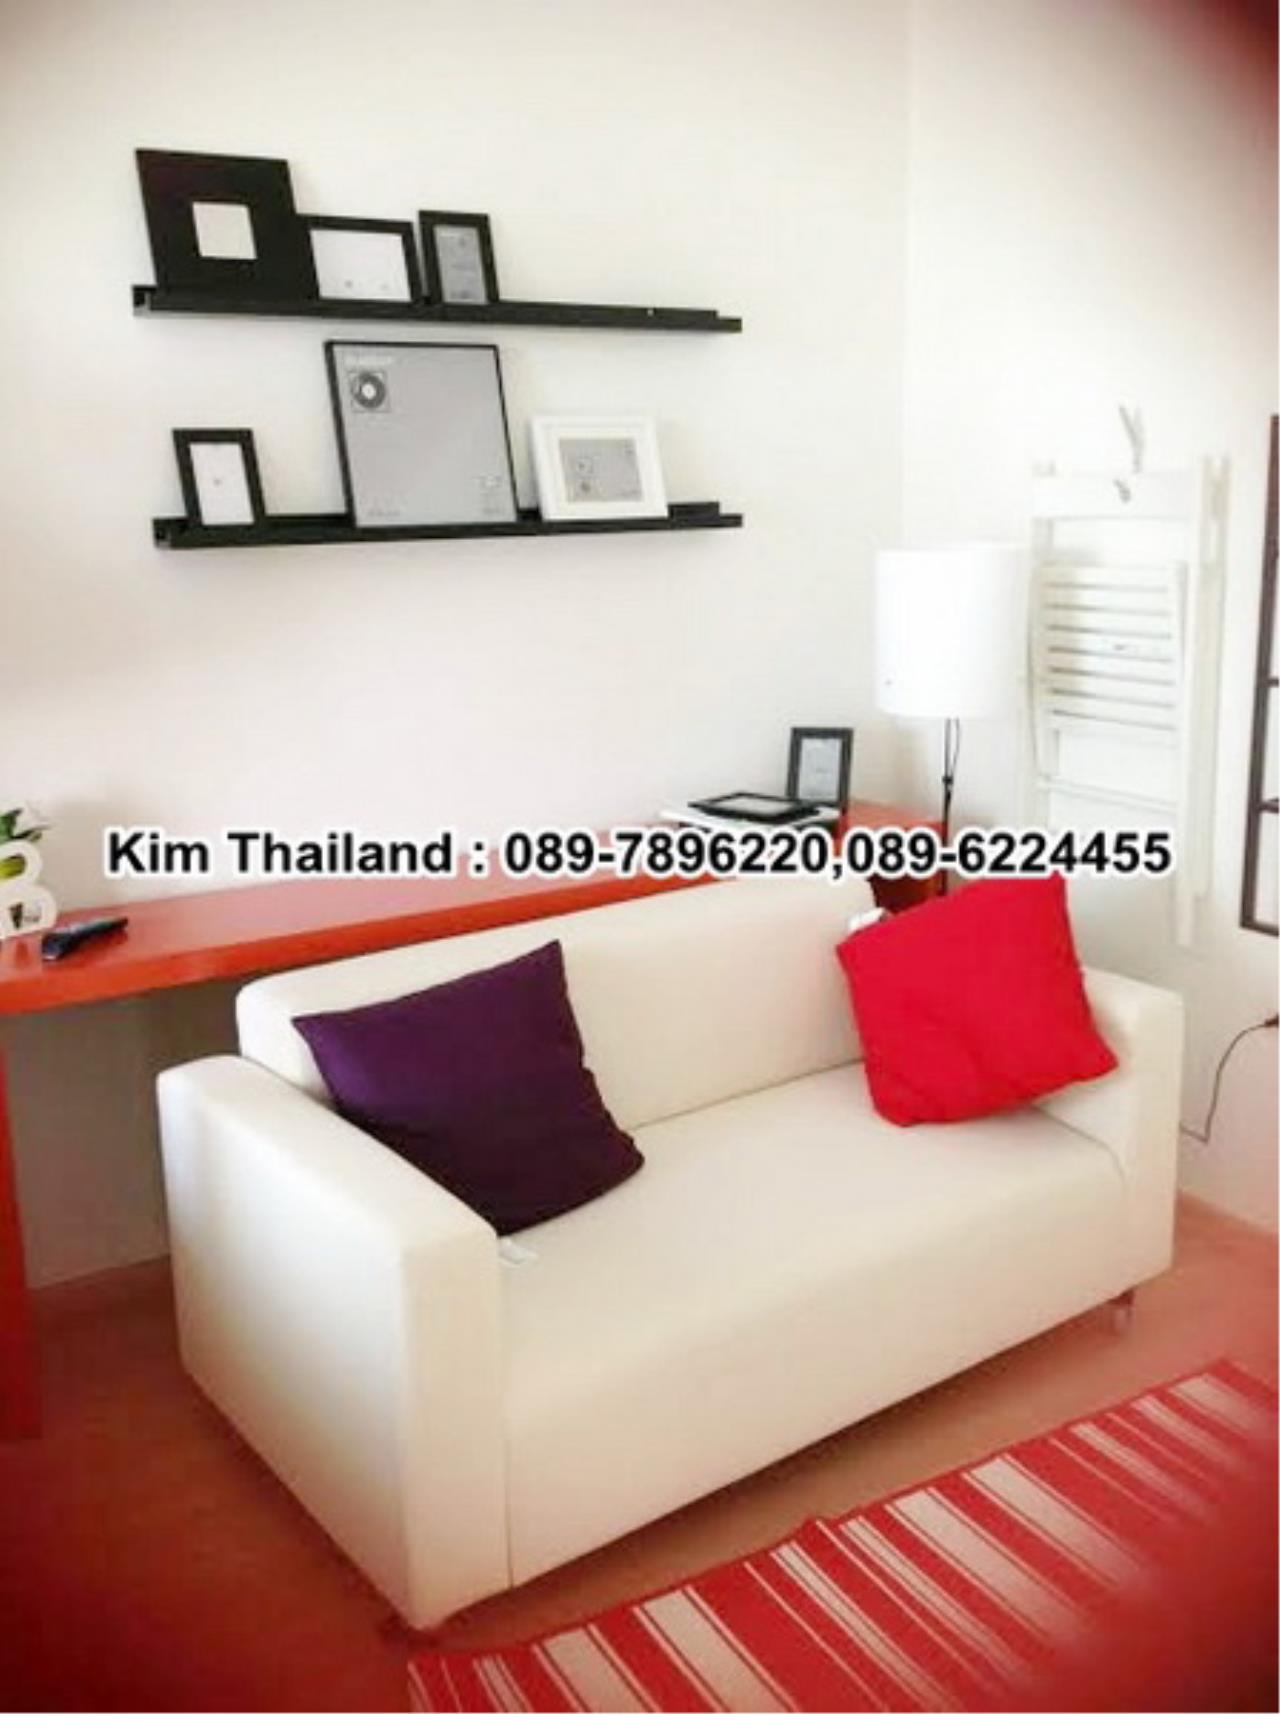 BKKcondorental Agency's For rent, Condo U Delight @ Bang Sue Station., Area 27 sq.m. 1 bedroom.Rental price 8000 THB per month. 1